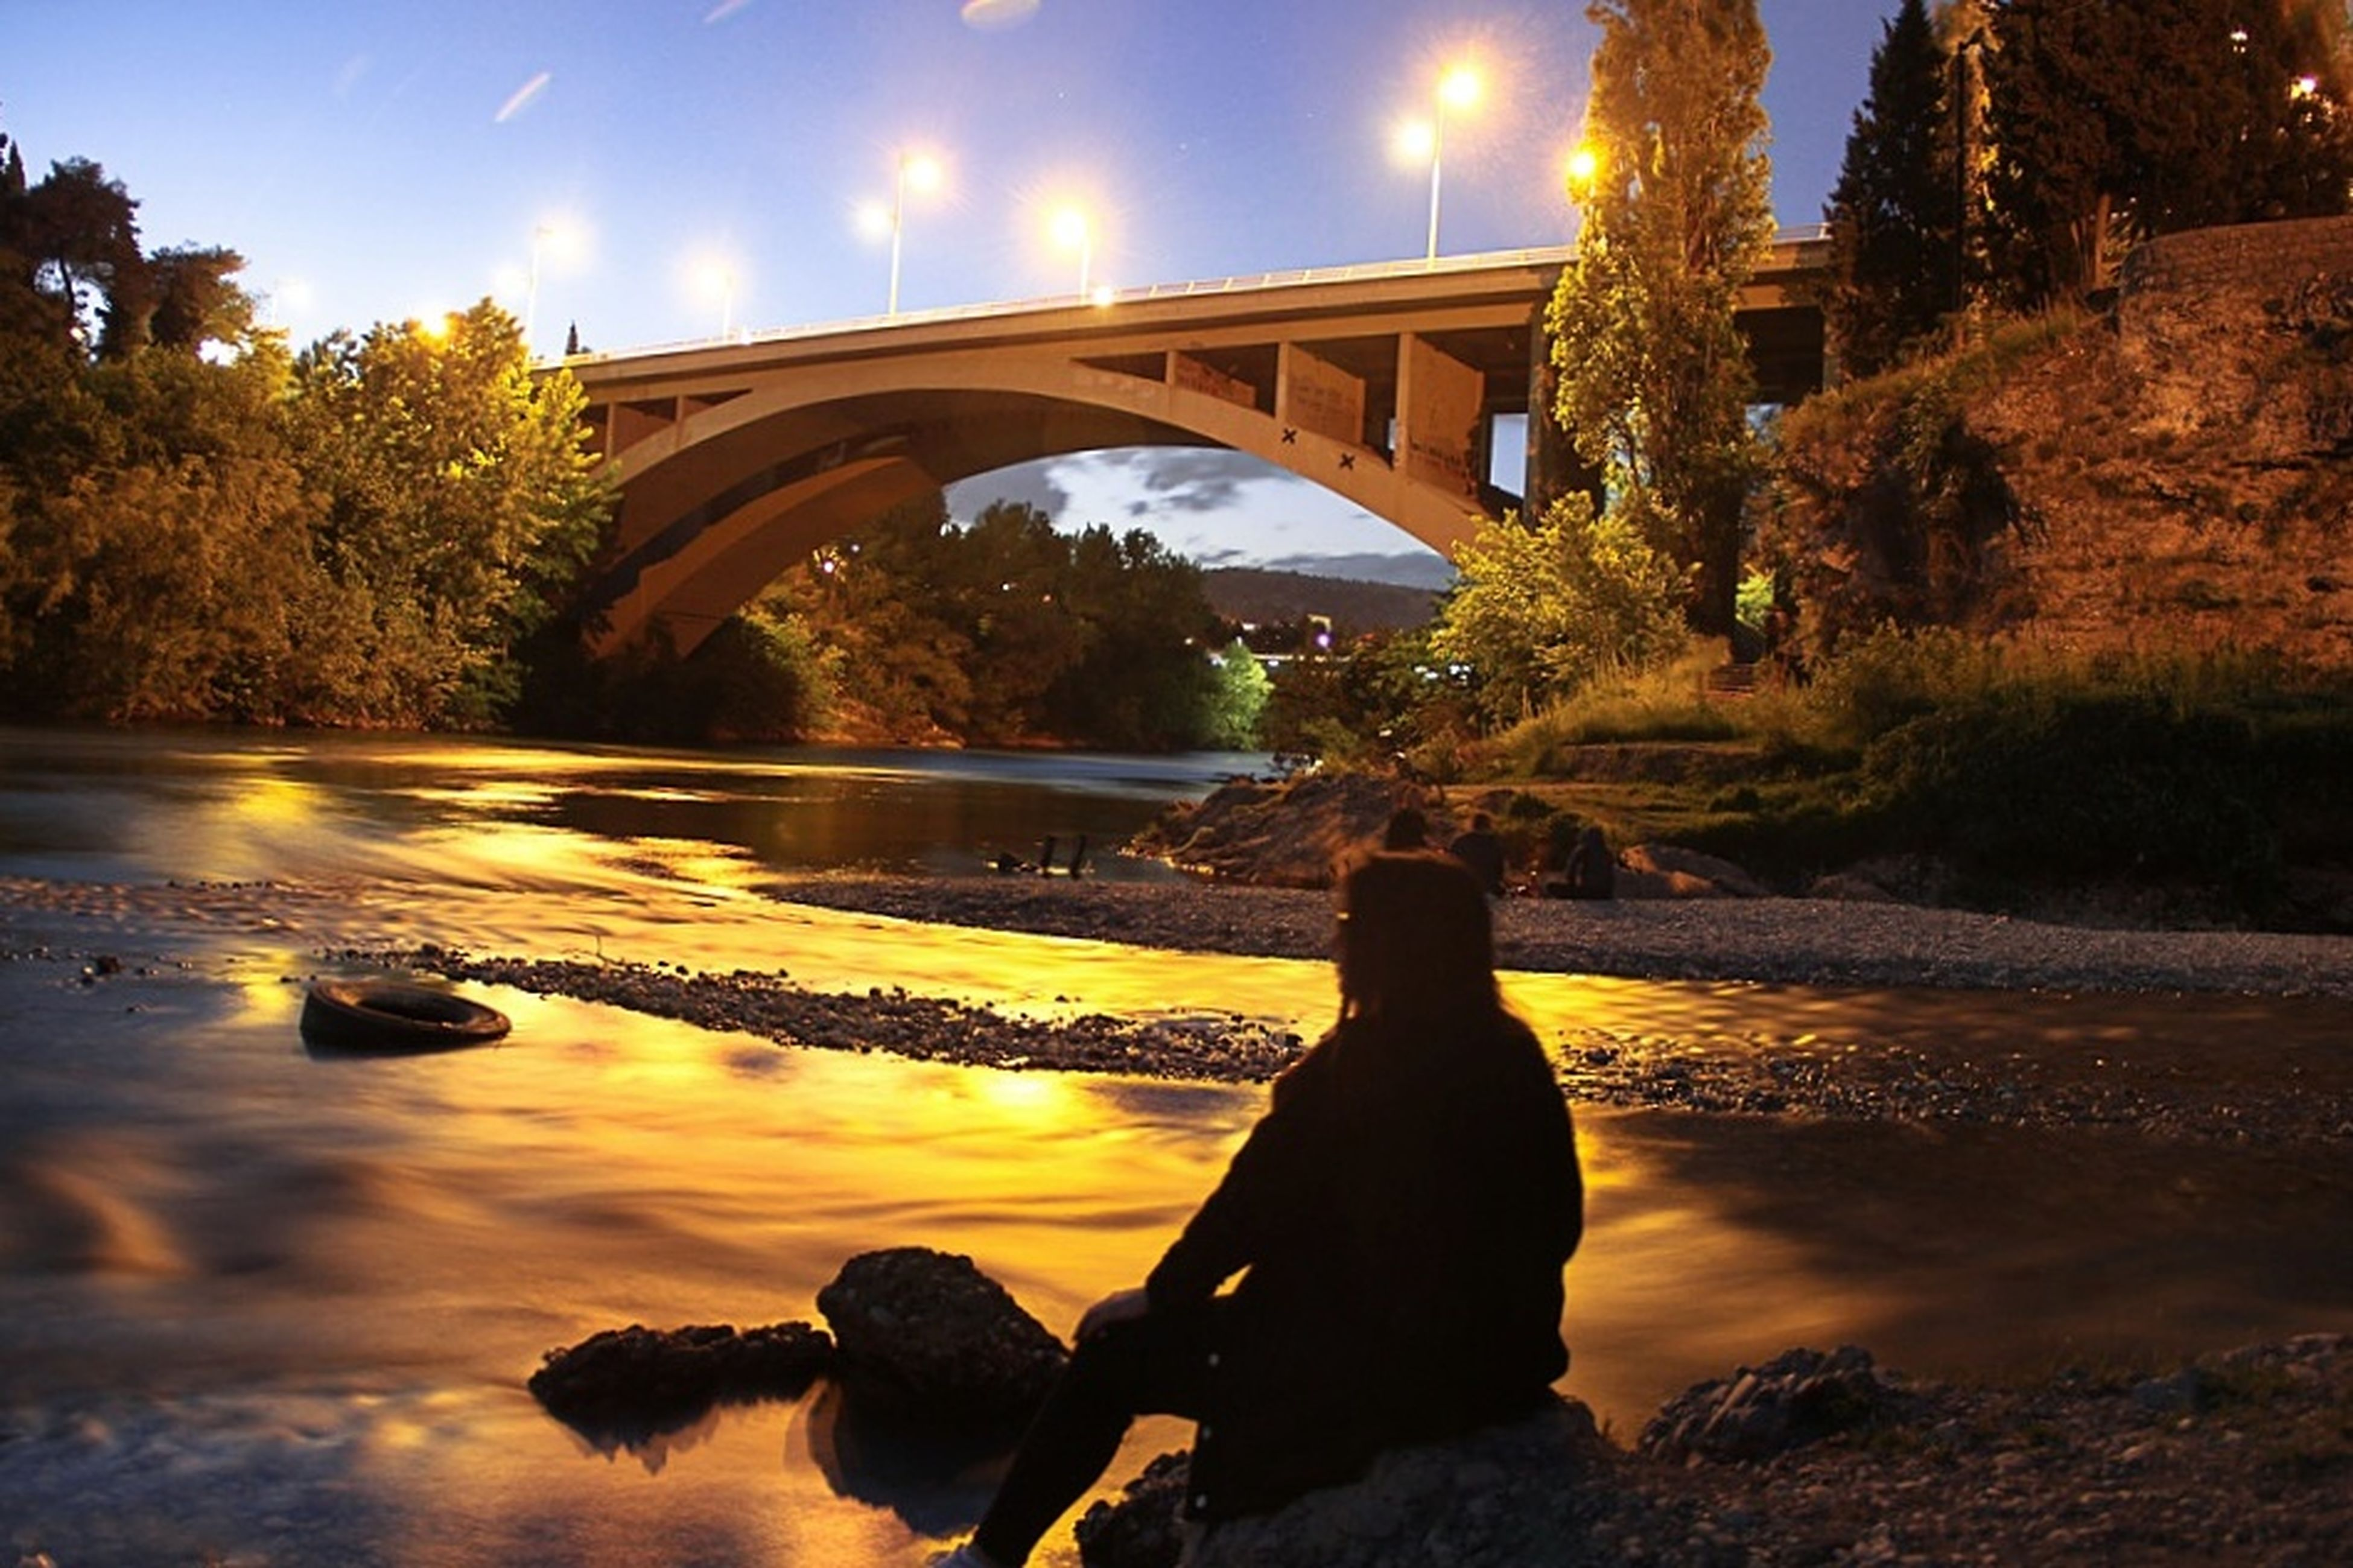 water, reflection, nature, tree, sunset, river, beauty in nature, bridge - man made structure, outdoors, sitting, sky, no people, day